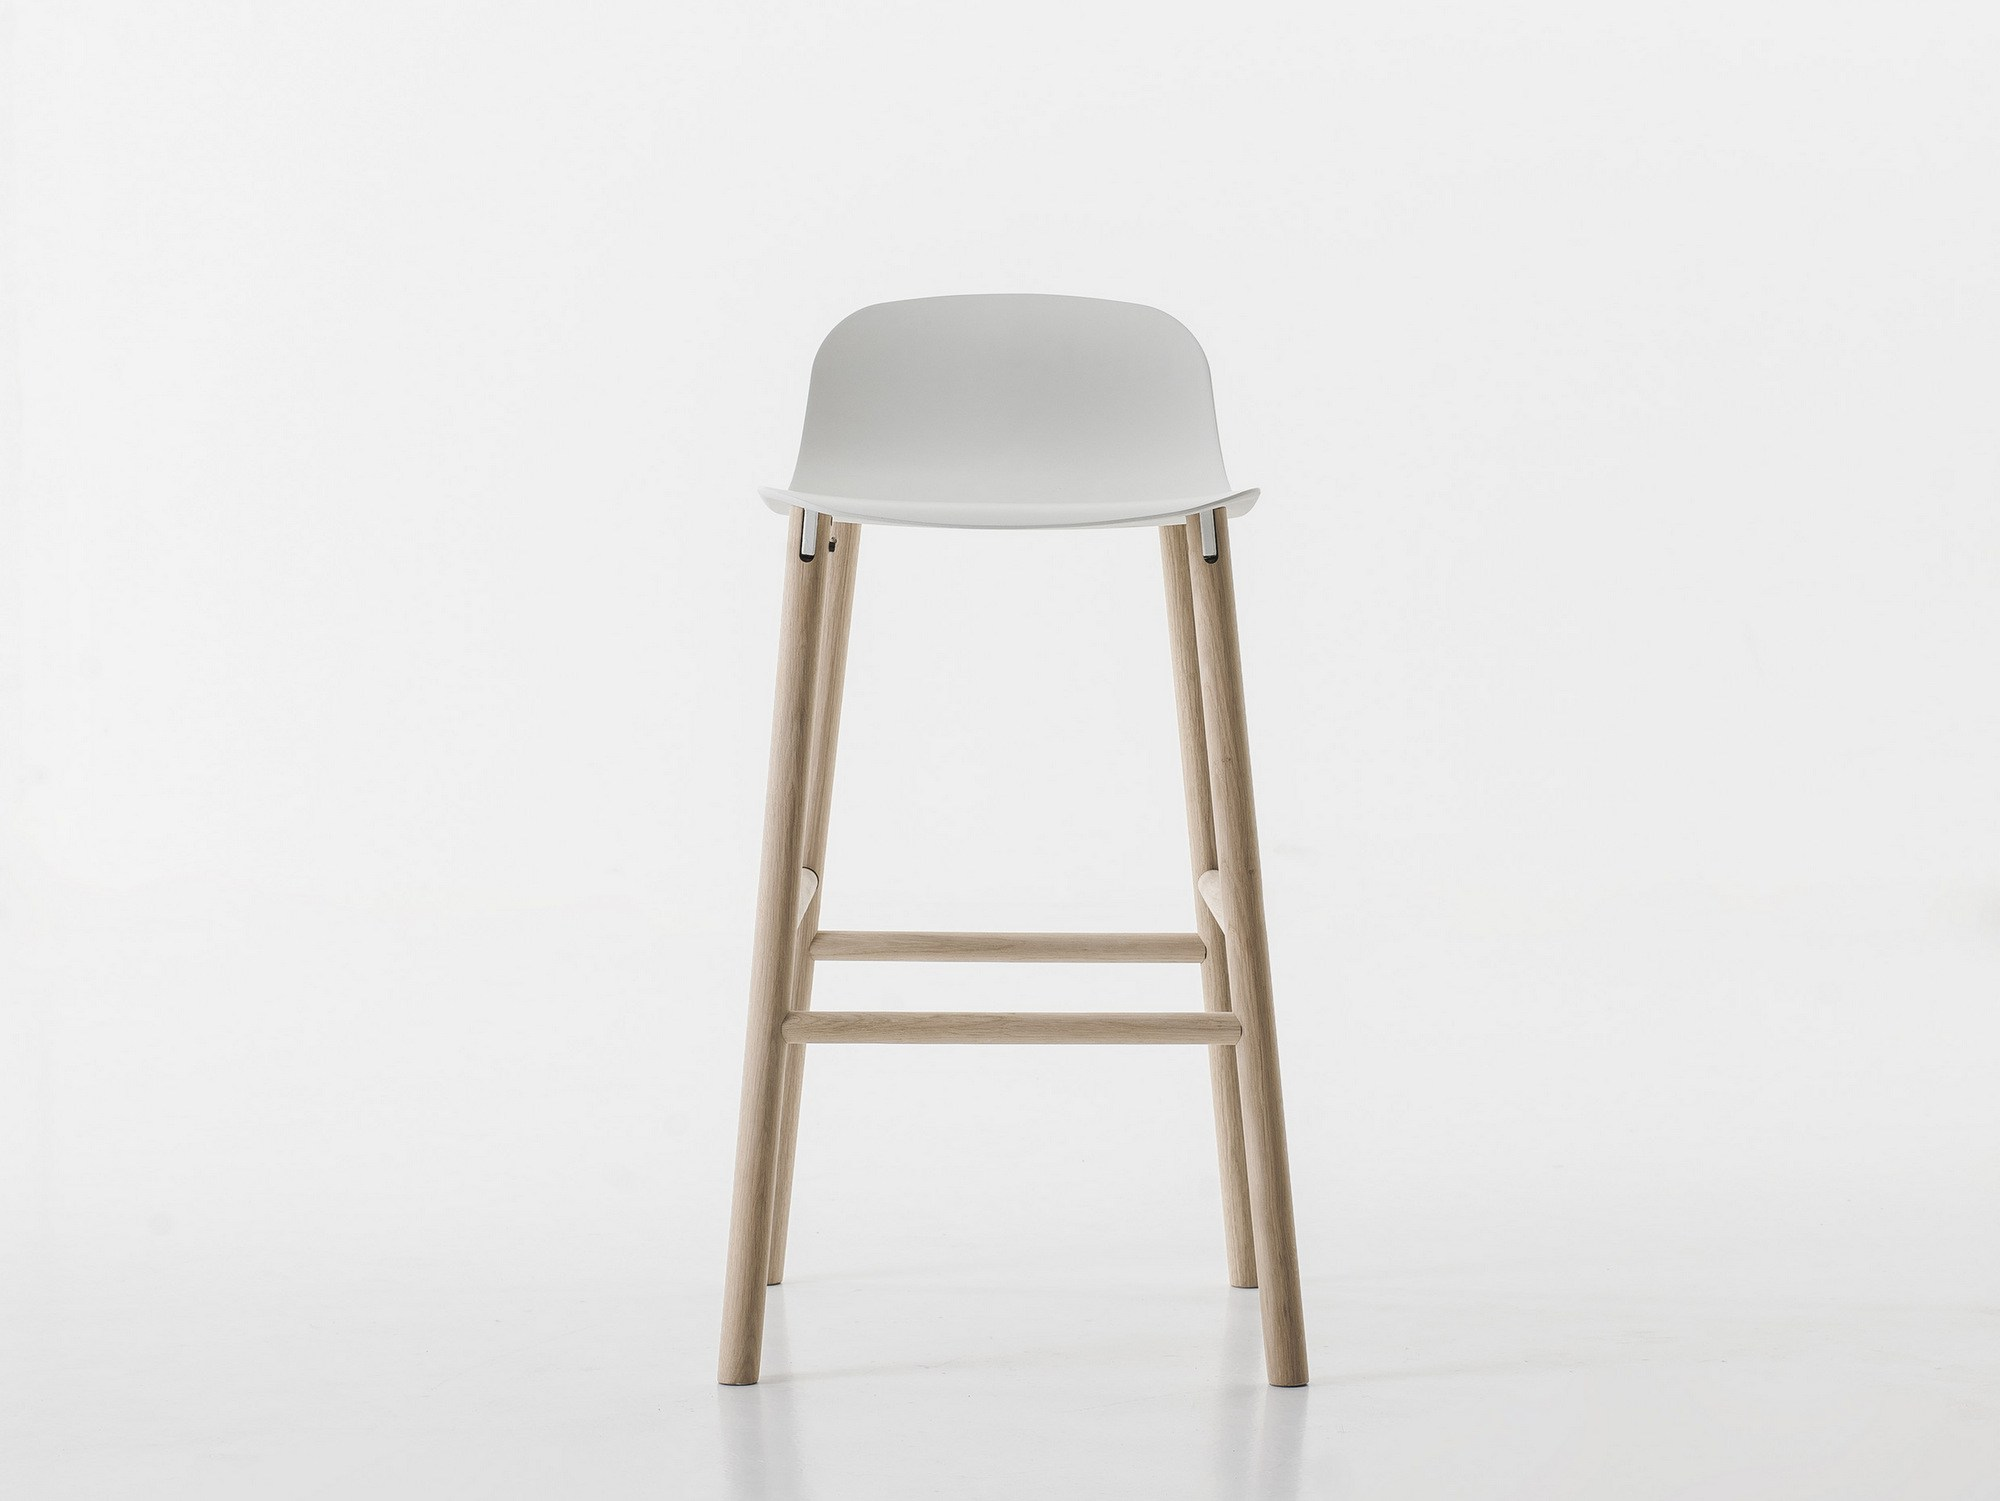 Sharky Stool by Neuland Industriedesign for Kristalia